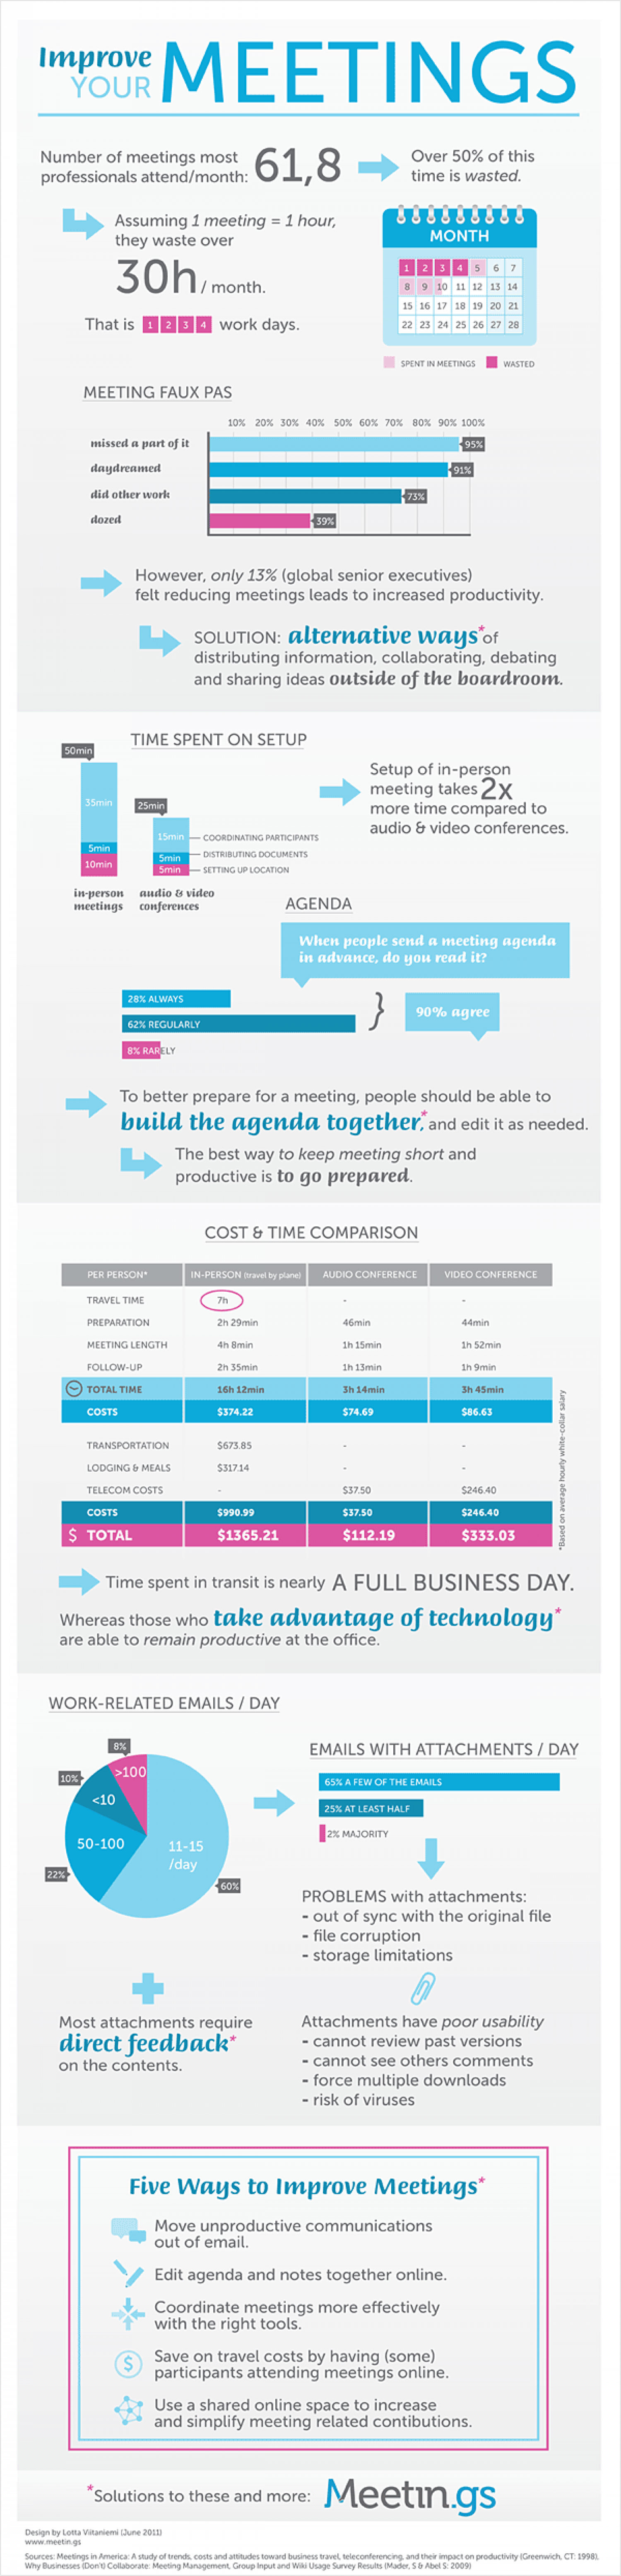 How To Improve Your Meetings Infographic